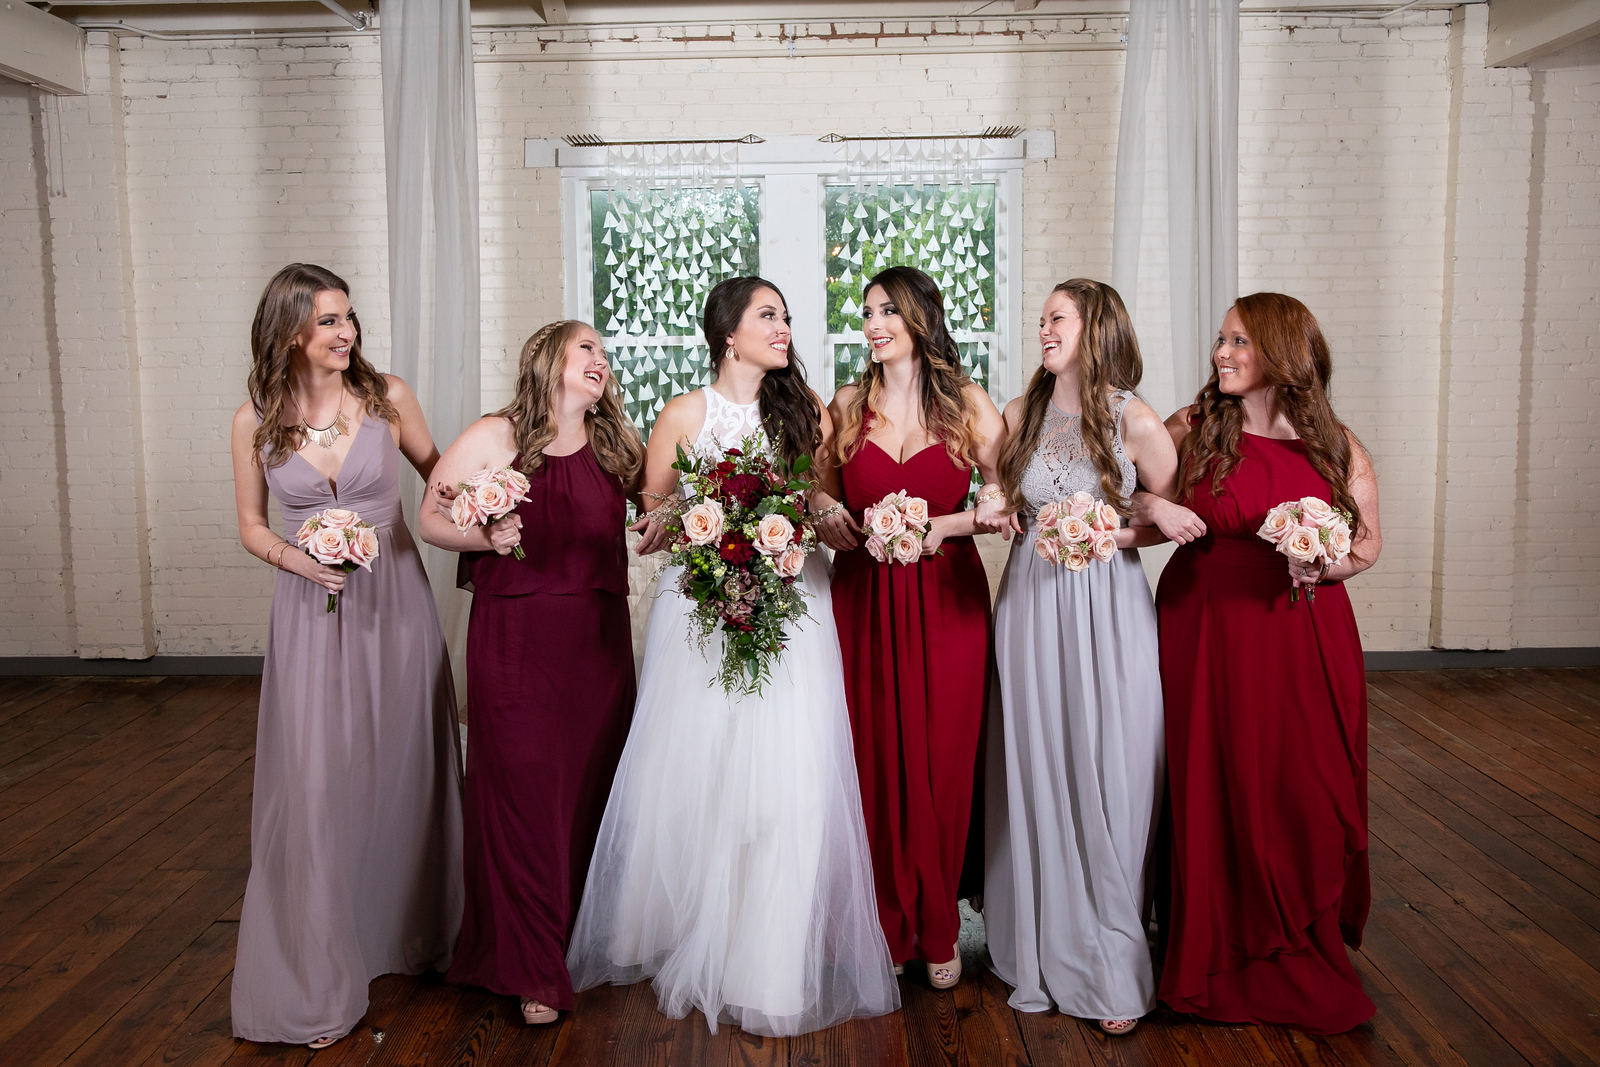 five bridesmaids locking arms while they smile and look toward the bride in the middle